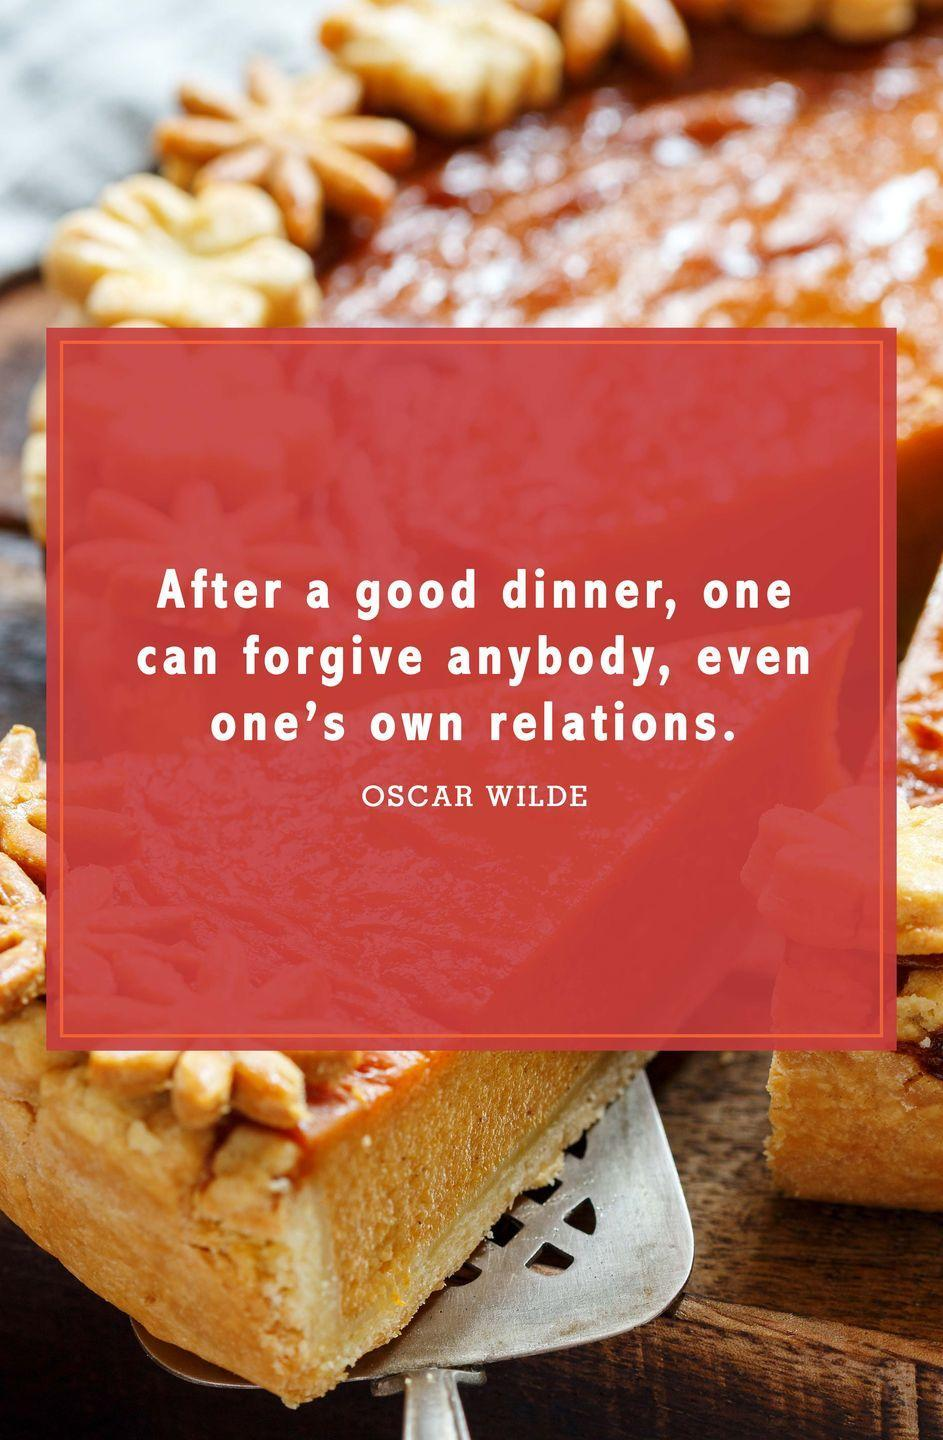 "<p>""After a good dinner, one can forgive anybody, even one's own relations.""</p>"